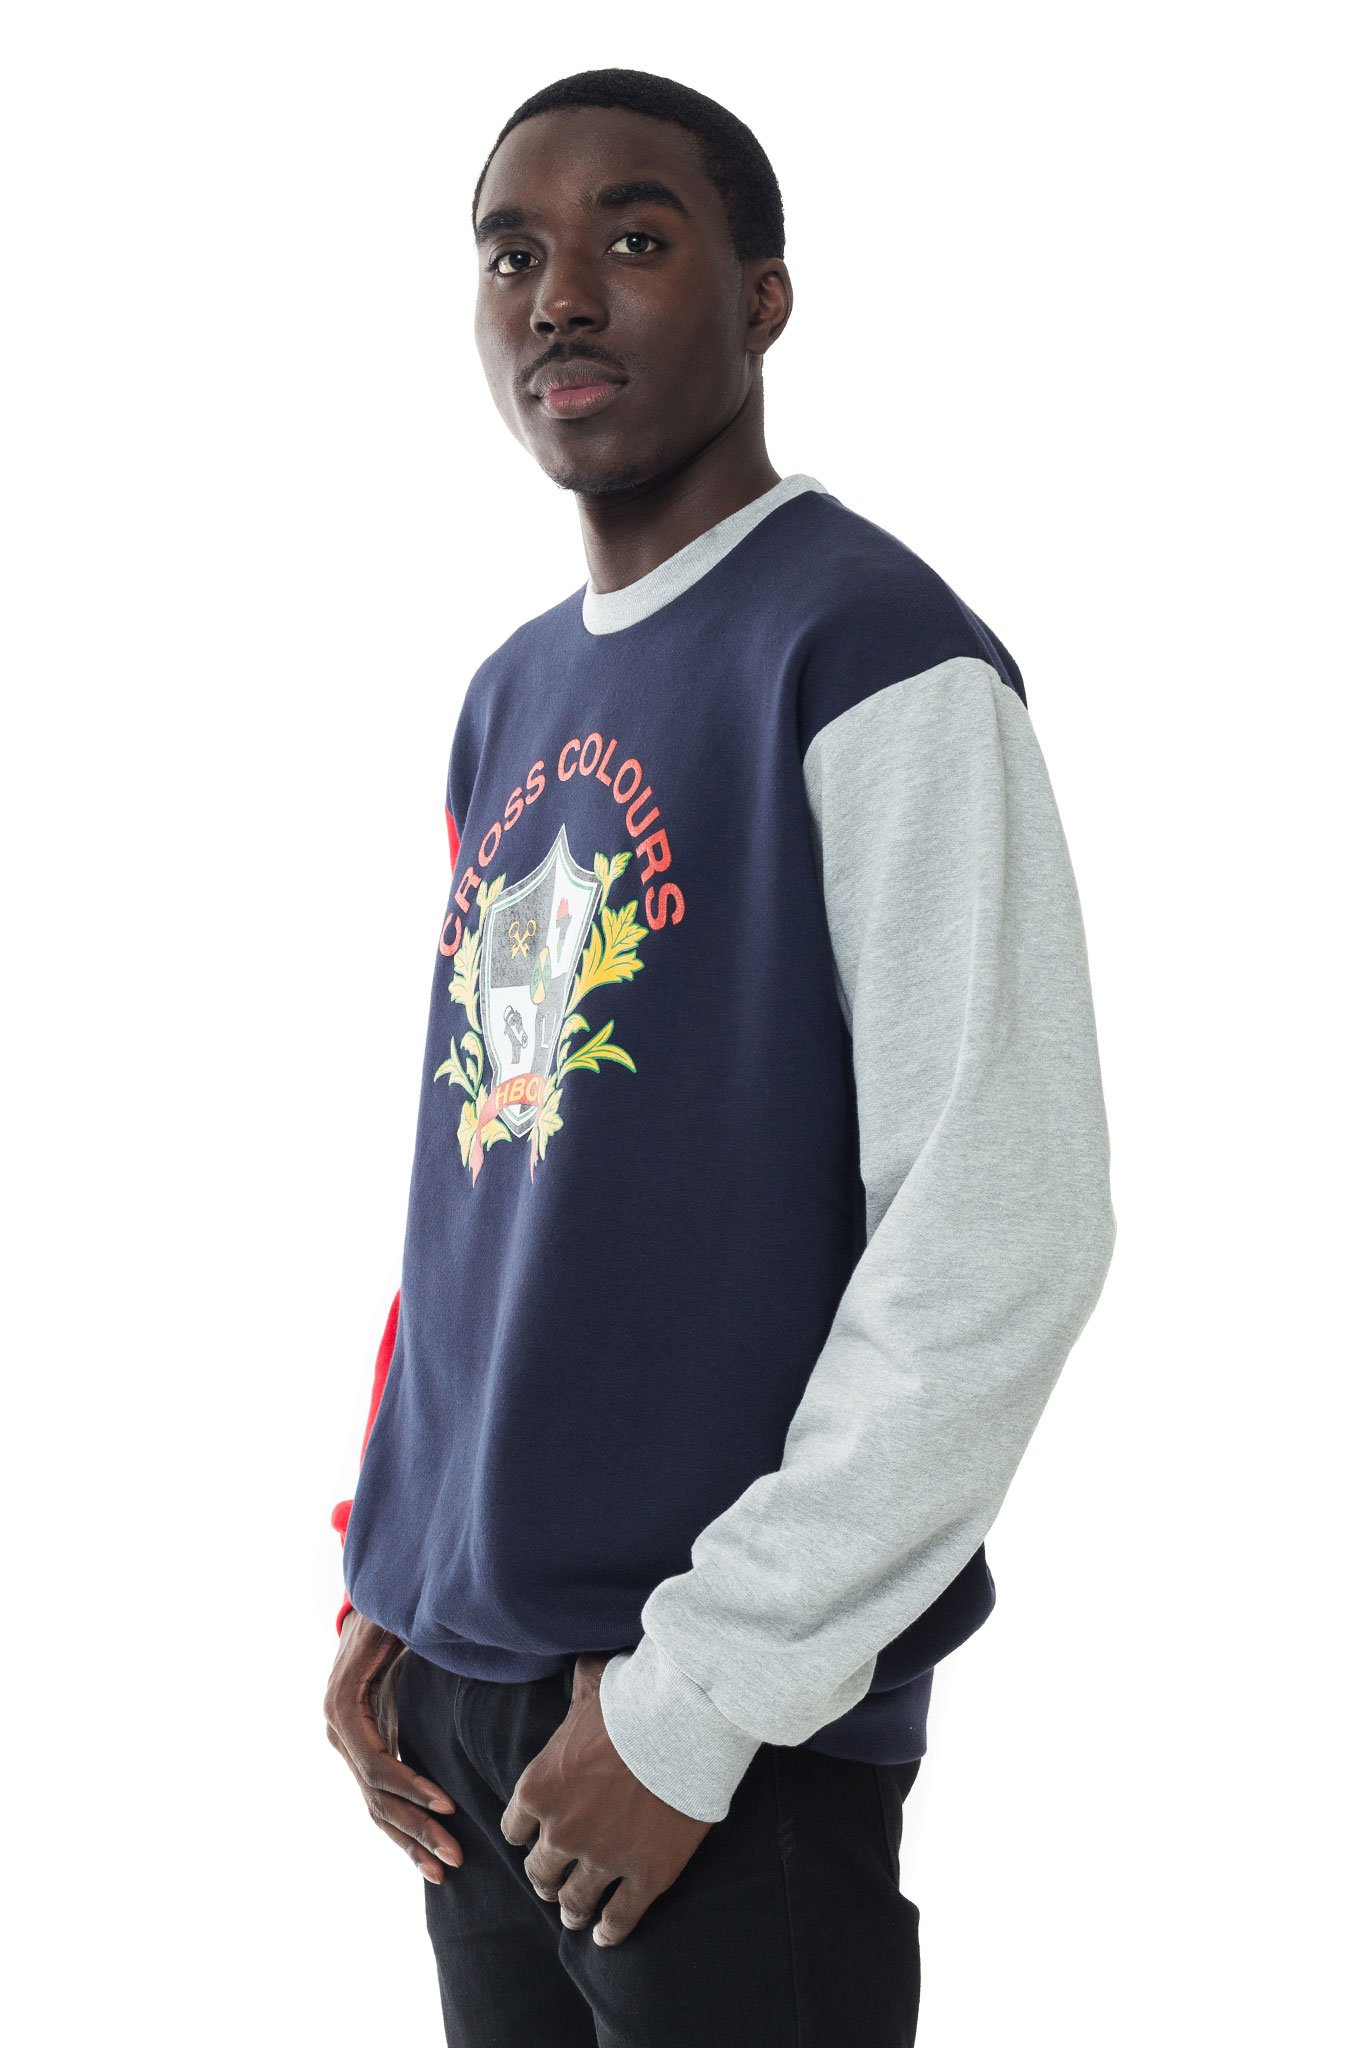 Cross_Colours_HBCU_Shield_Unisex_Crewneck__Grey_Multi